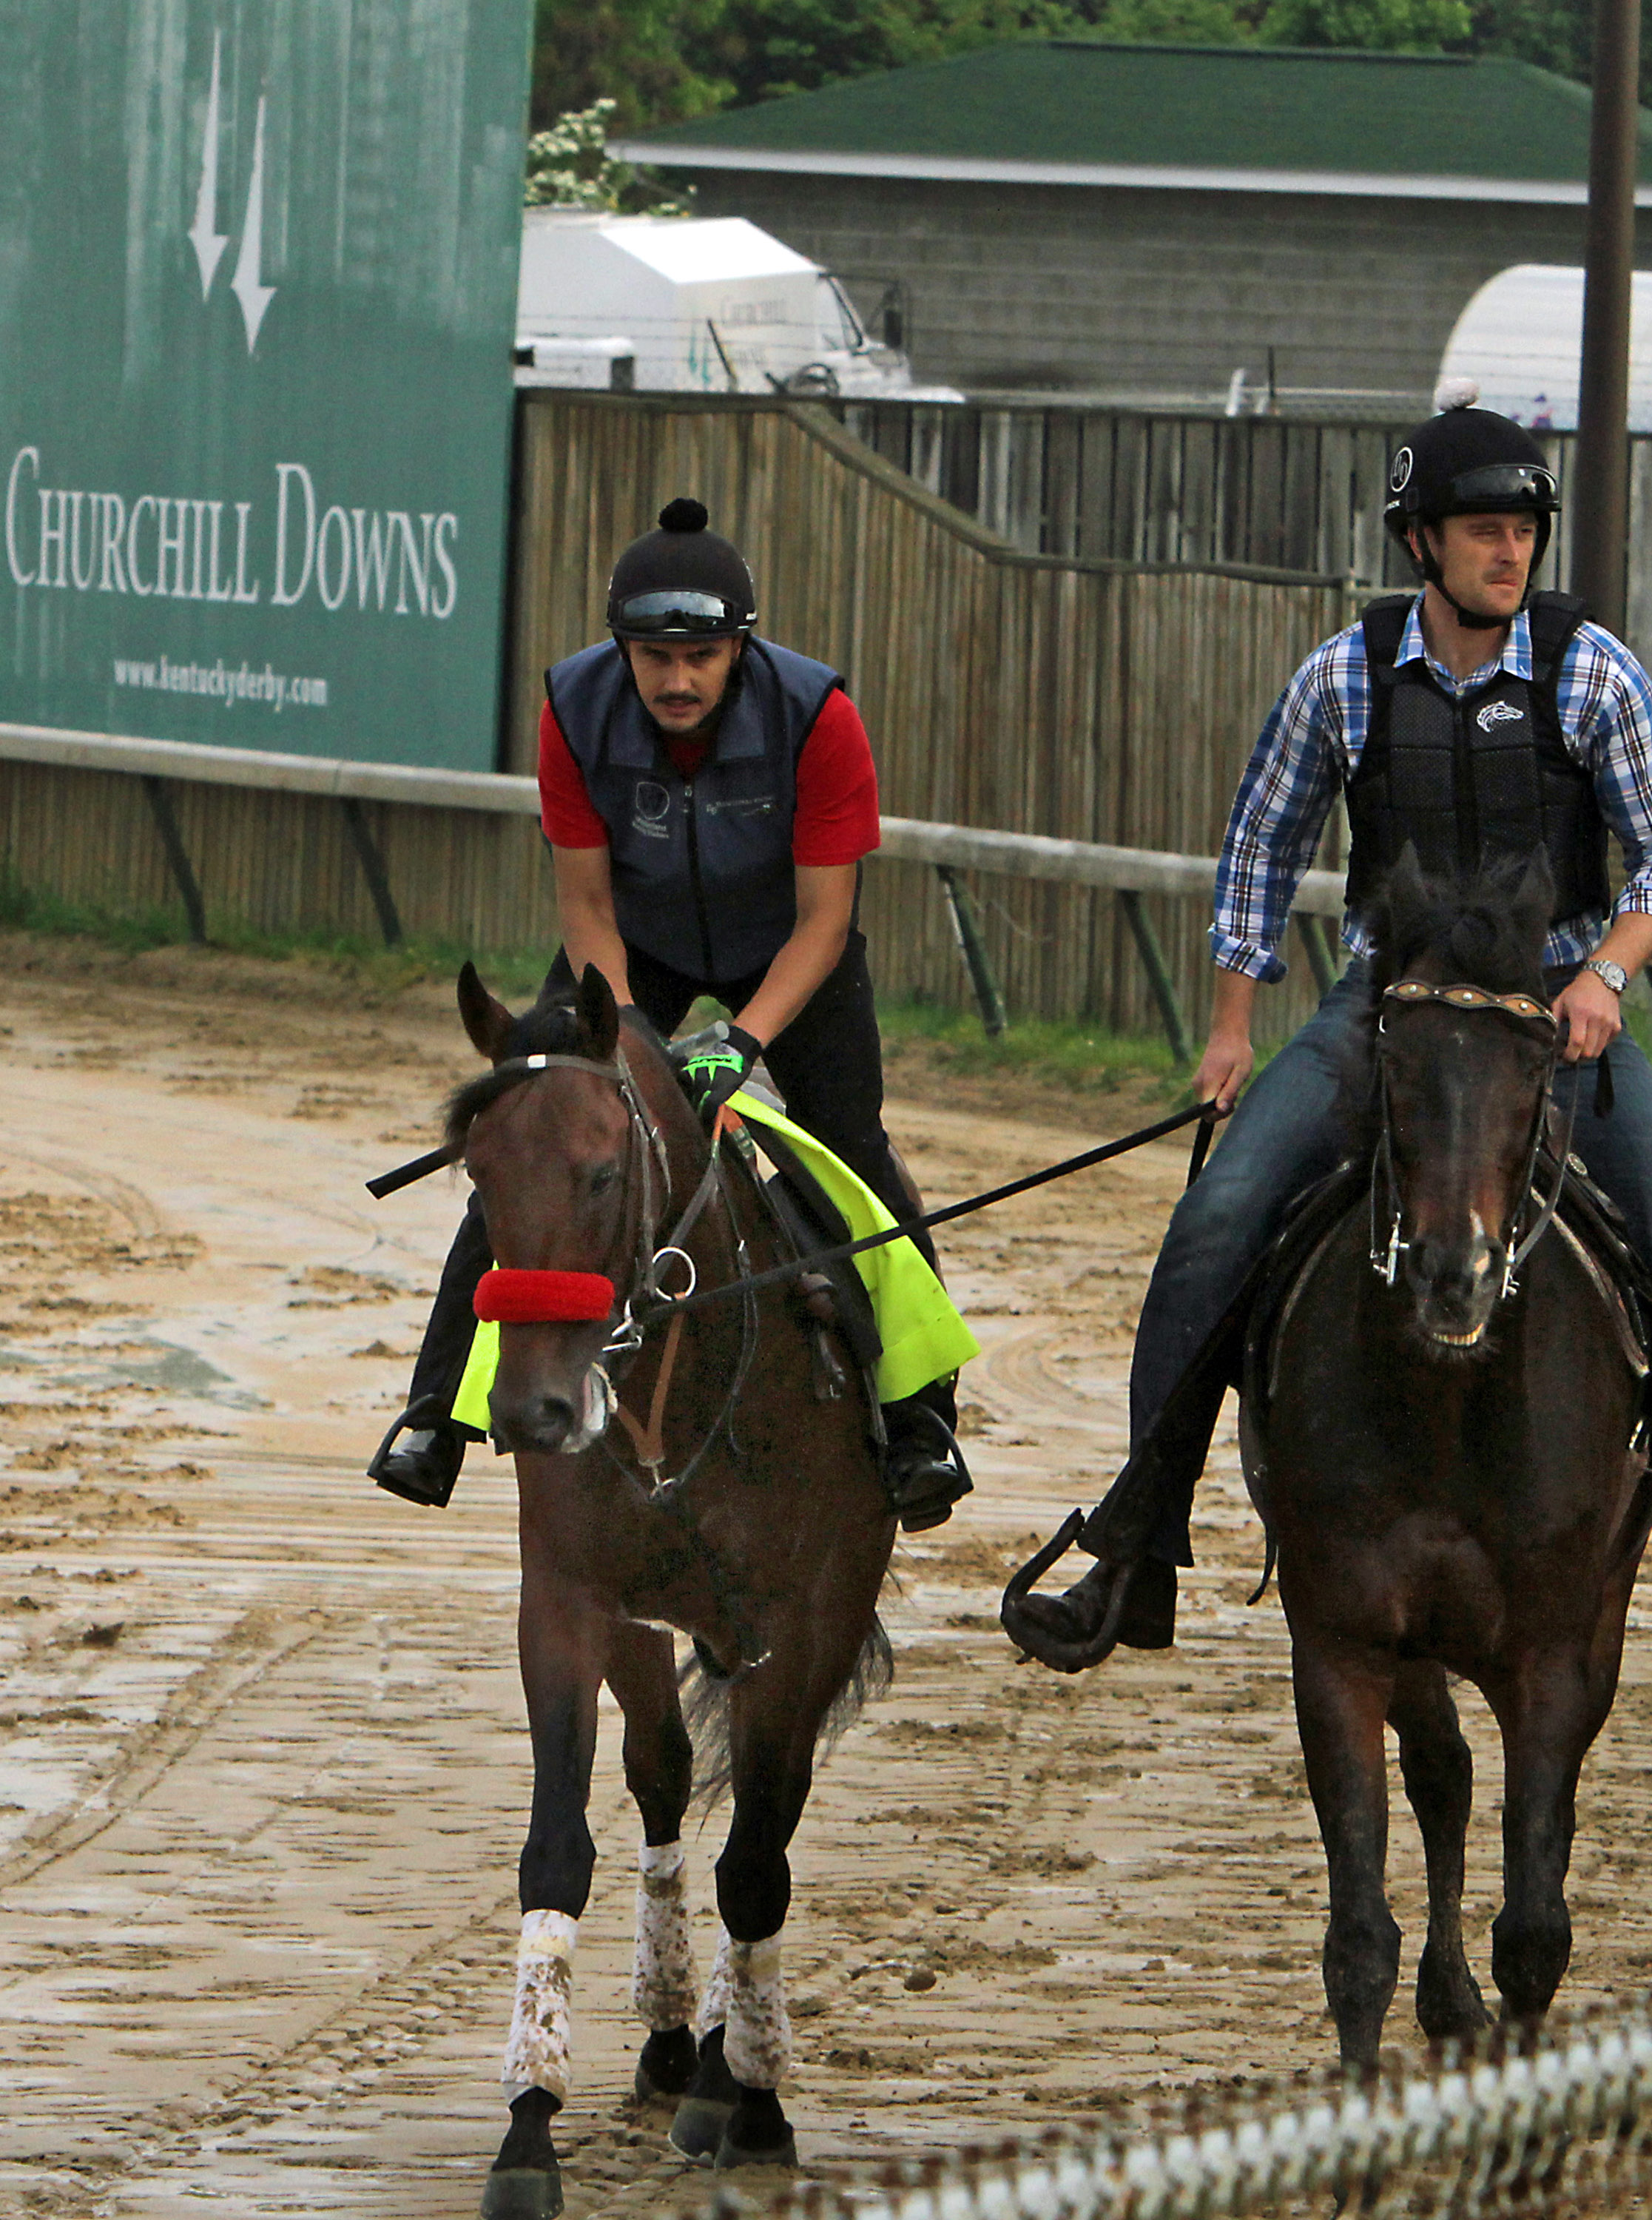 Kentucky Derby hopeful Nyquist, with exercise rider Jonny Garcia in the saddle, walks the wrong way on the track at Churchill Downs in Louisville, Ky., Sunday, May 1, 2016. It was the colt's first trip to the racing surface since shipping from Keeneland.